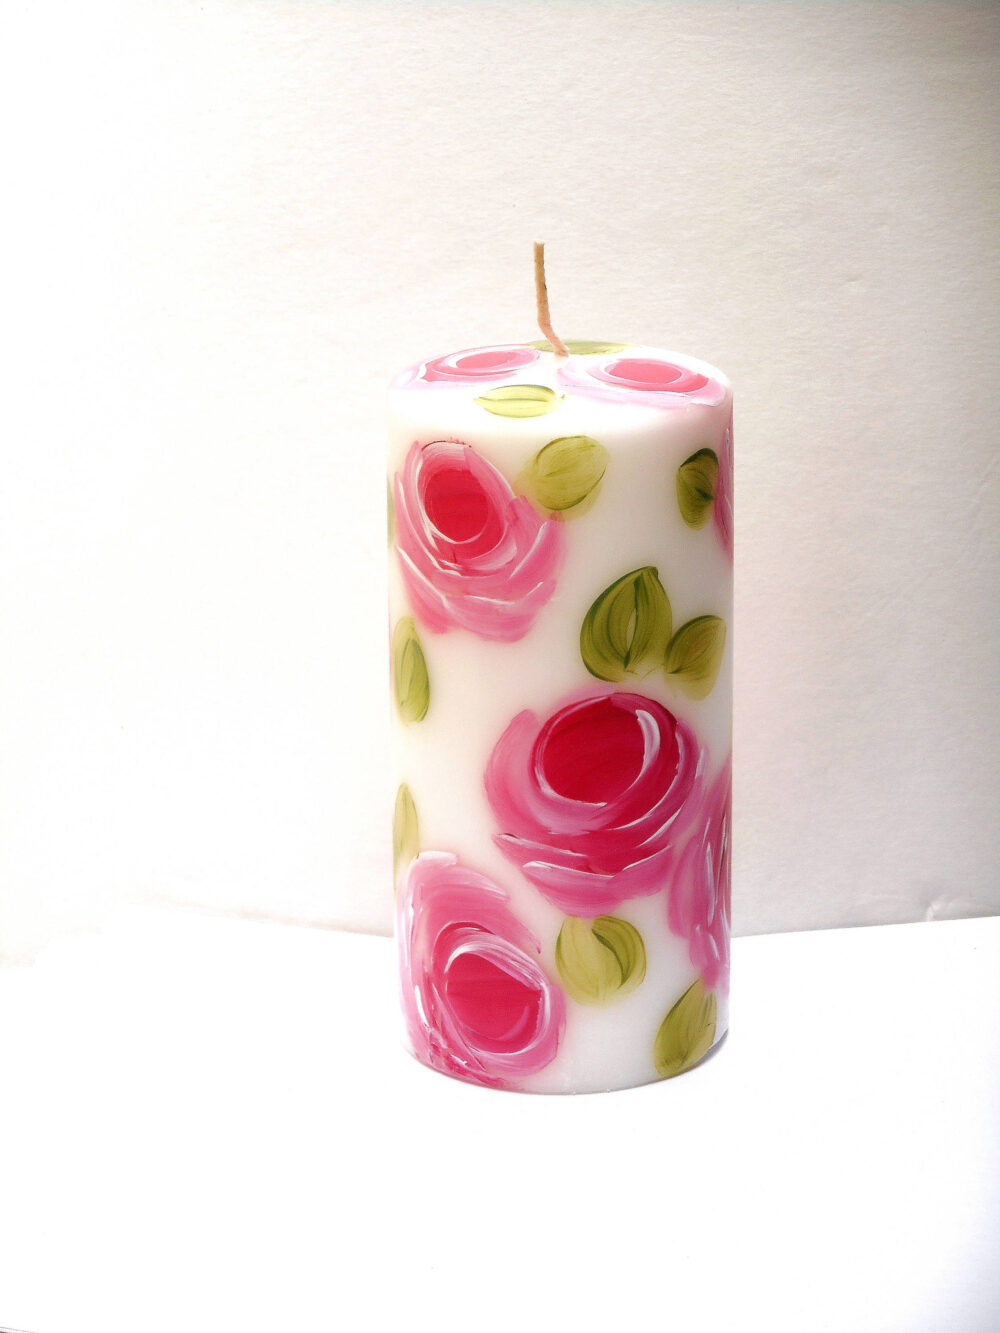 Painted Rose White Pillar Candle Romantic Shabby Cottage Chic Decor Free Shipping